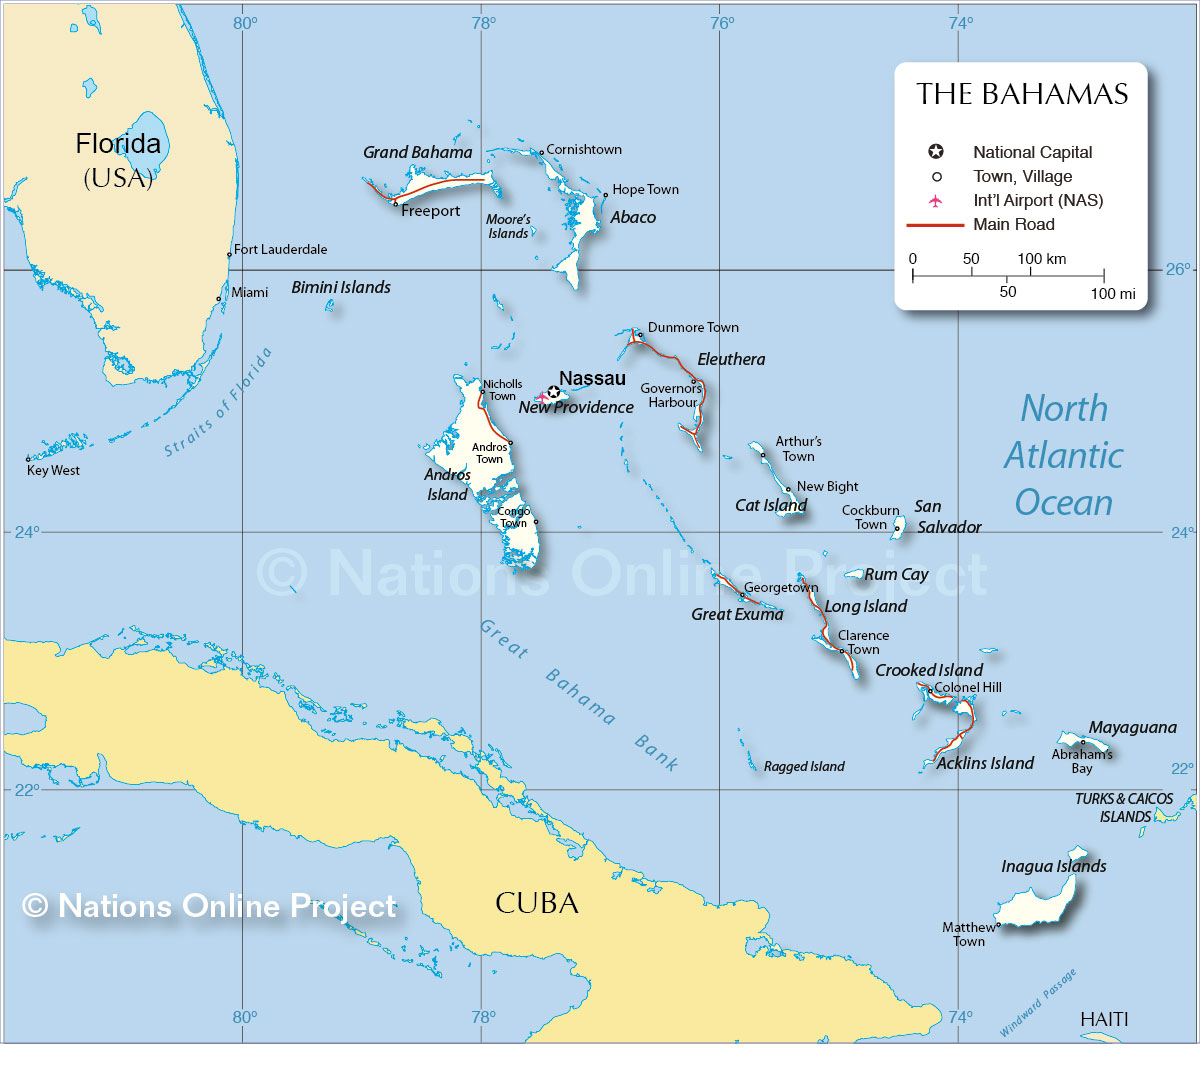 Map of The Bahamas - Nations Online Project